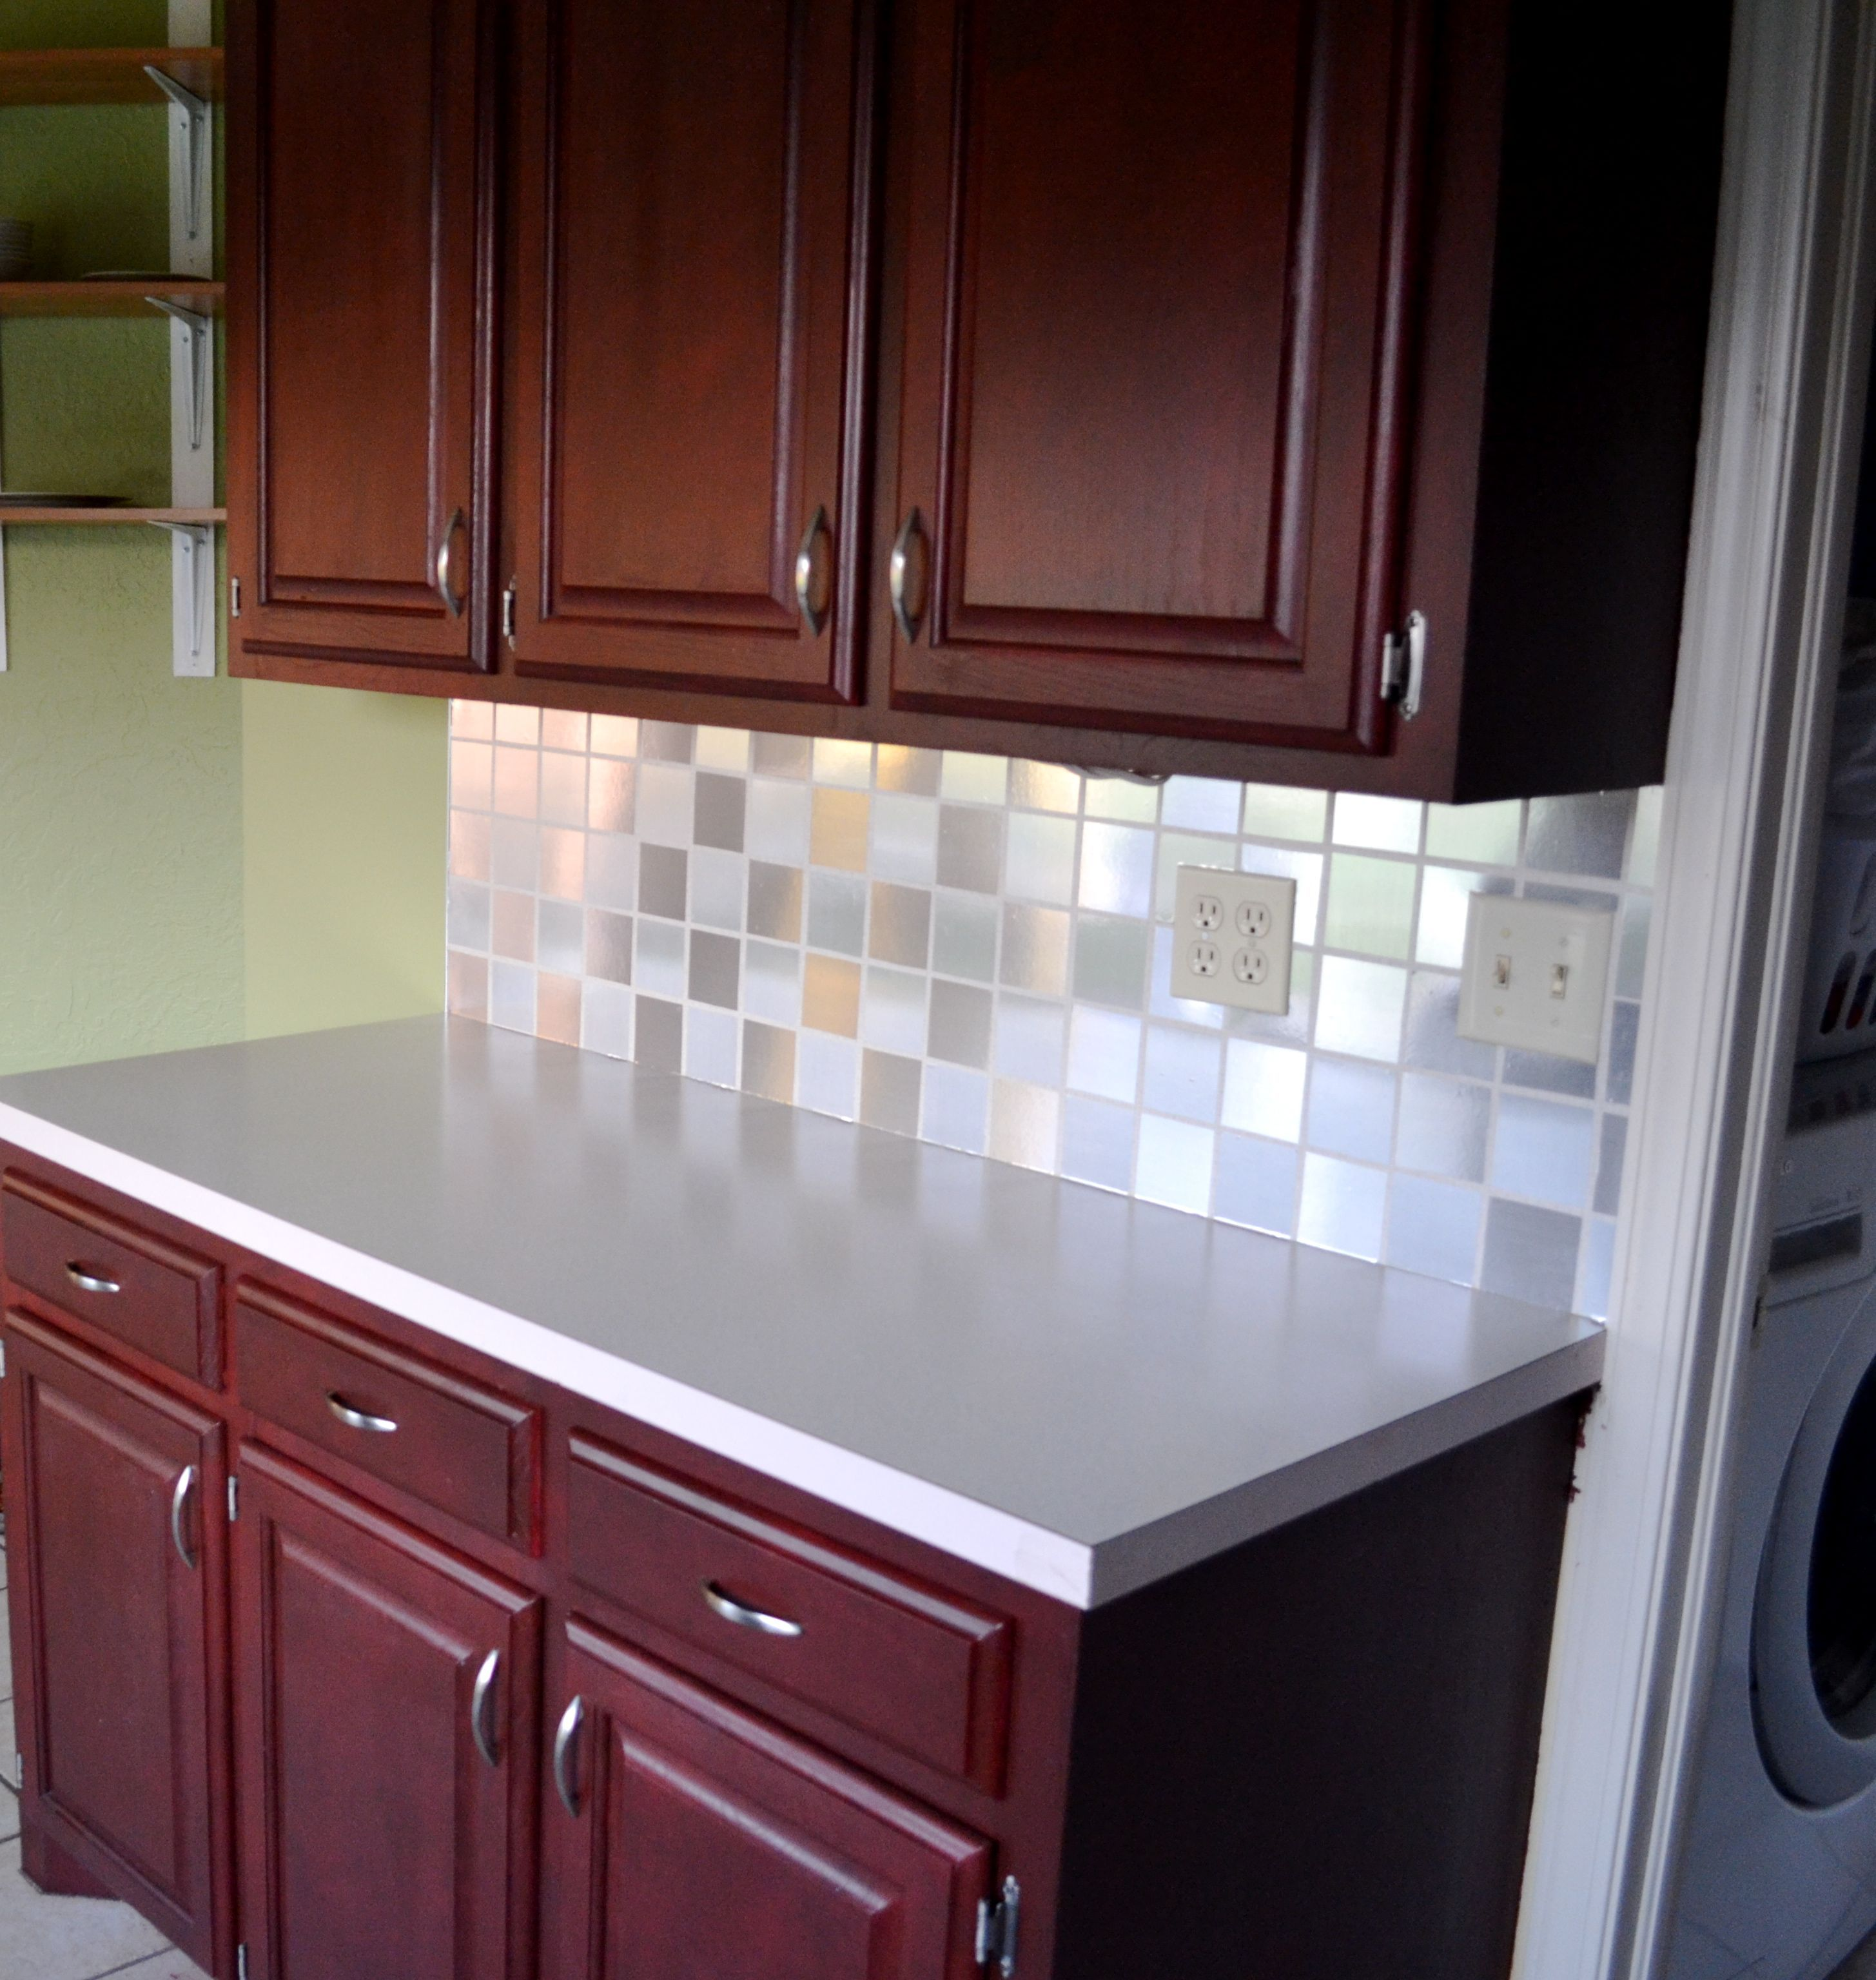 Stainless steel tile backsplash nope it is made of silver contact